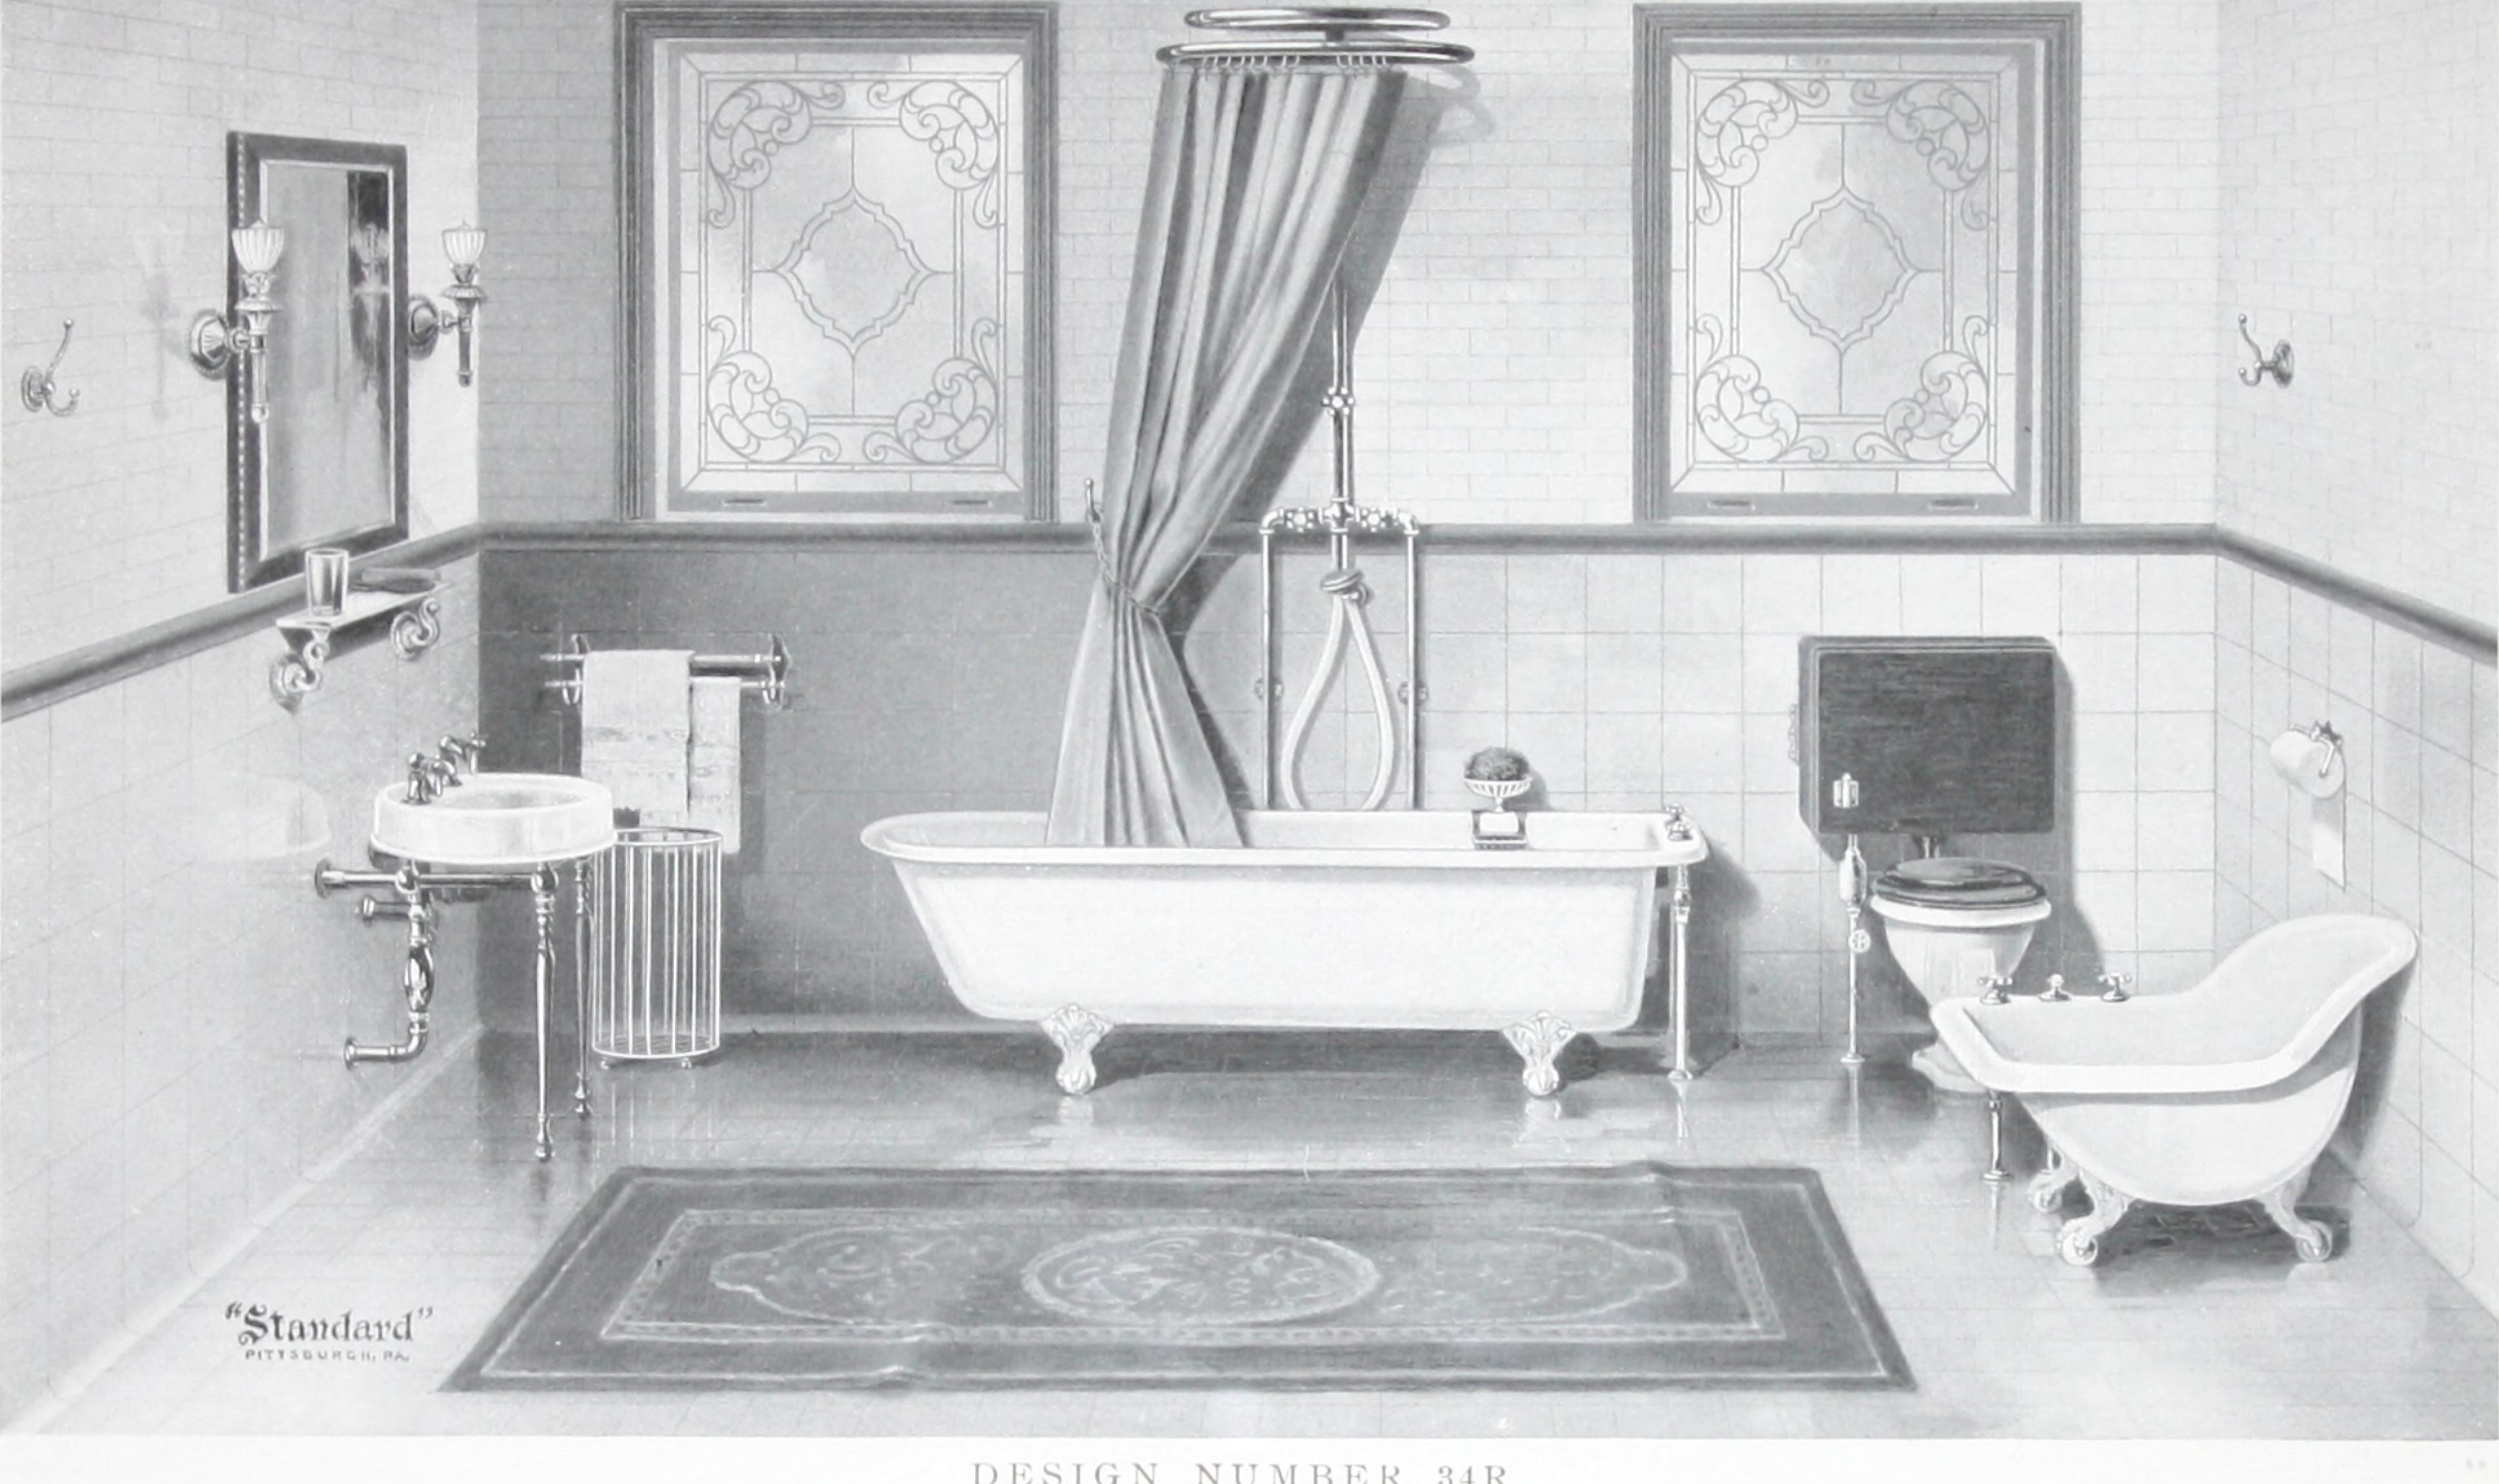 File:Modern bath rooms and appliances - a few suggestions about plumbing valuable to home